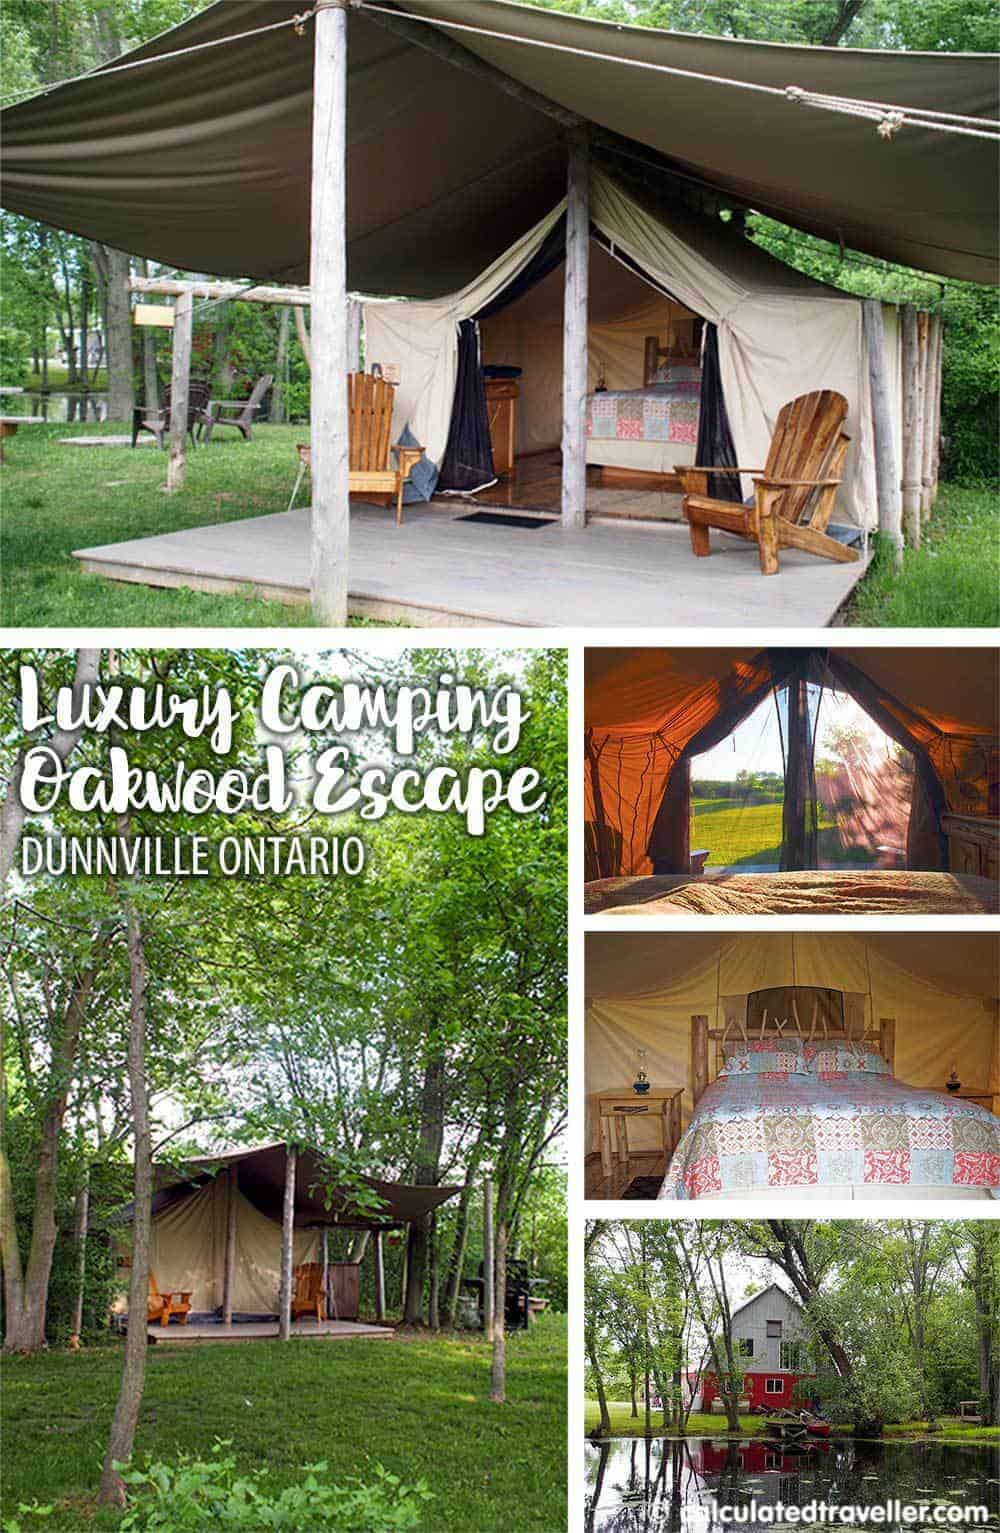 Luxury Camping Moments at Oakwood Escape, Dunnville ON. One night spent in a canvas prospector style tent glamping by Calculated Traveller.